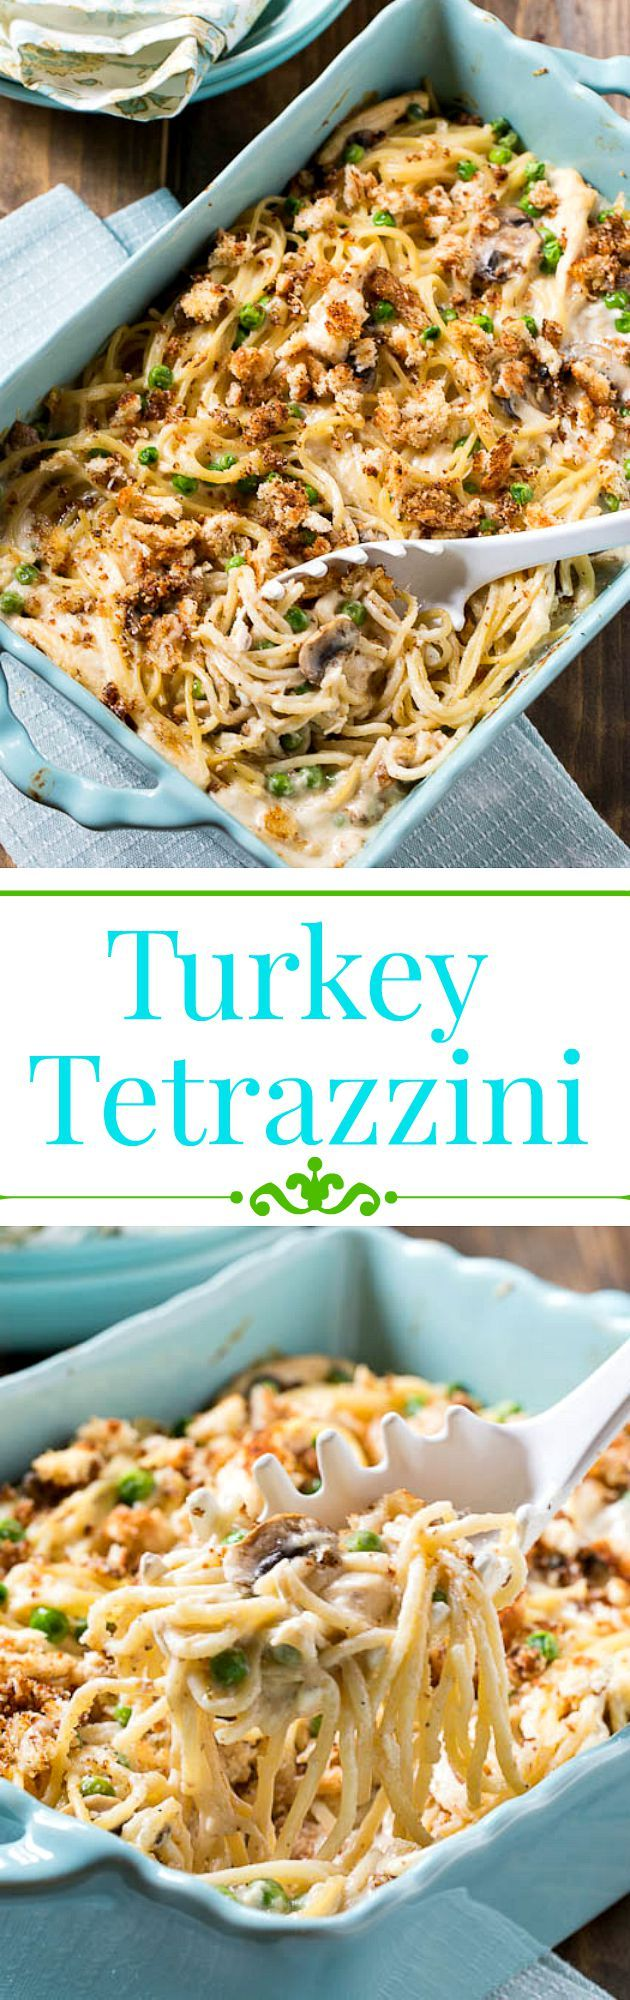 "From ""Spicy Southern Kitchen"", this recipe for Turkey Tetrazzini is just thing when you're playing hostess on chilly autumn evenings. The chicken broth, mushrooms, milk, cream, and spices will warm your guests and little ones from head to toe."